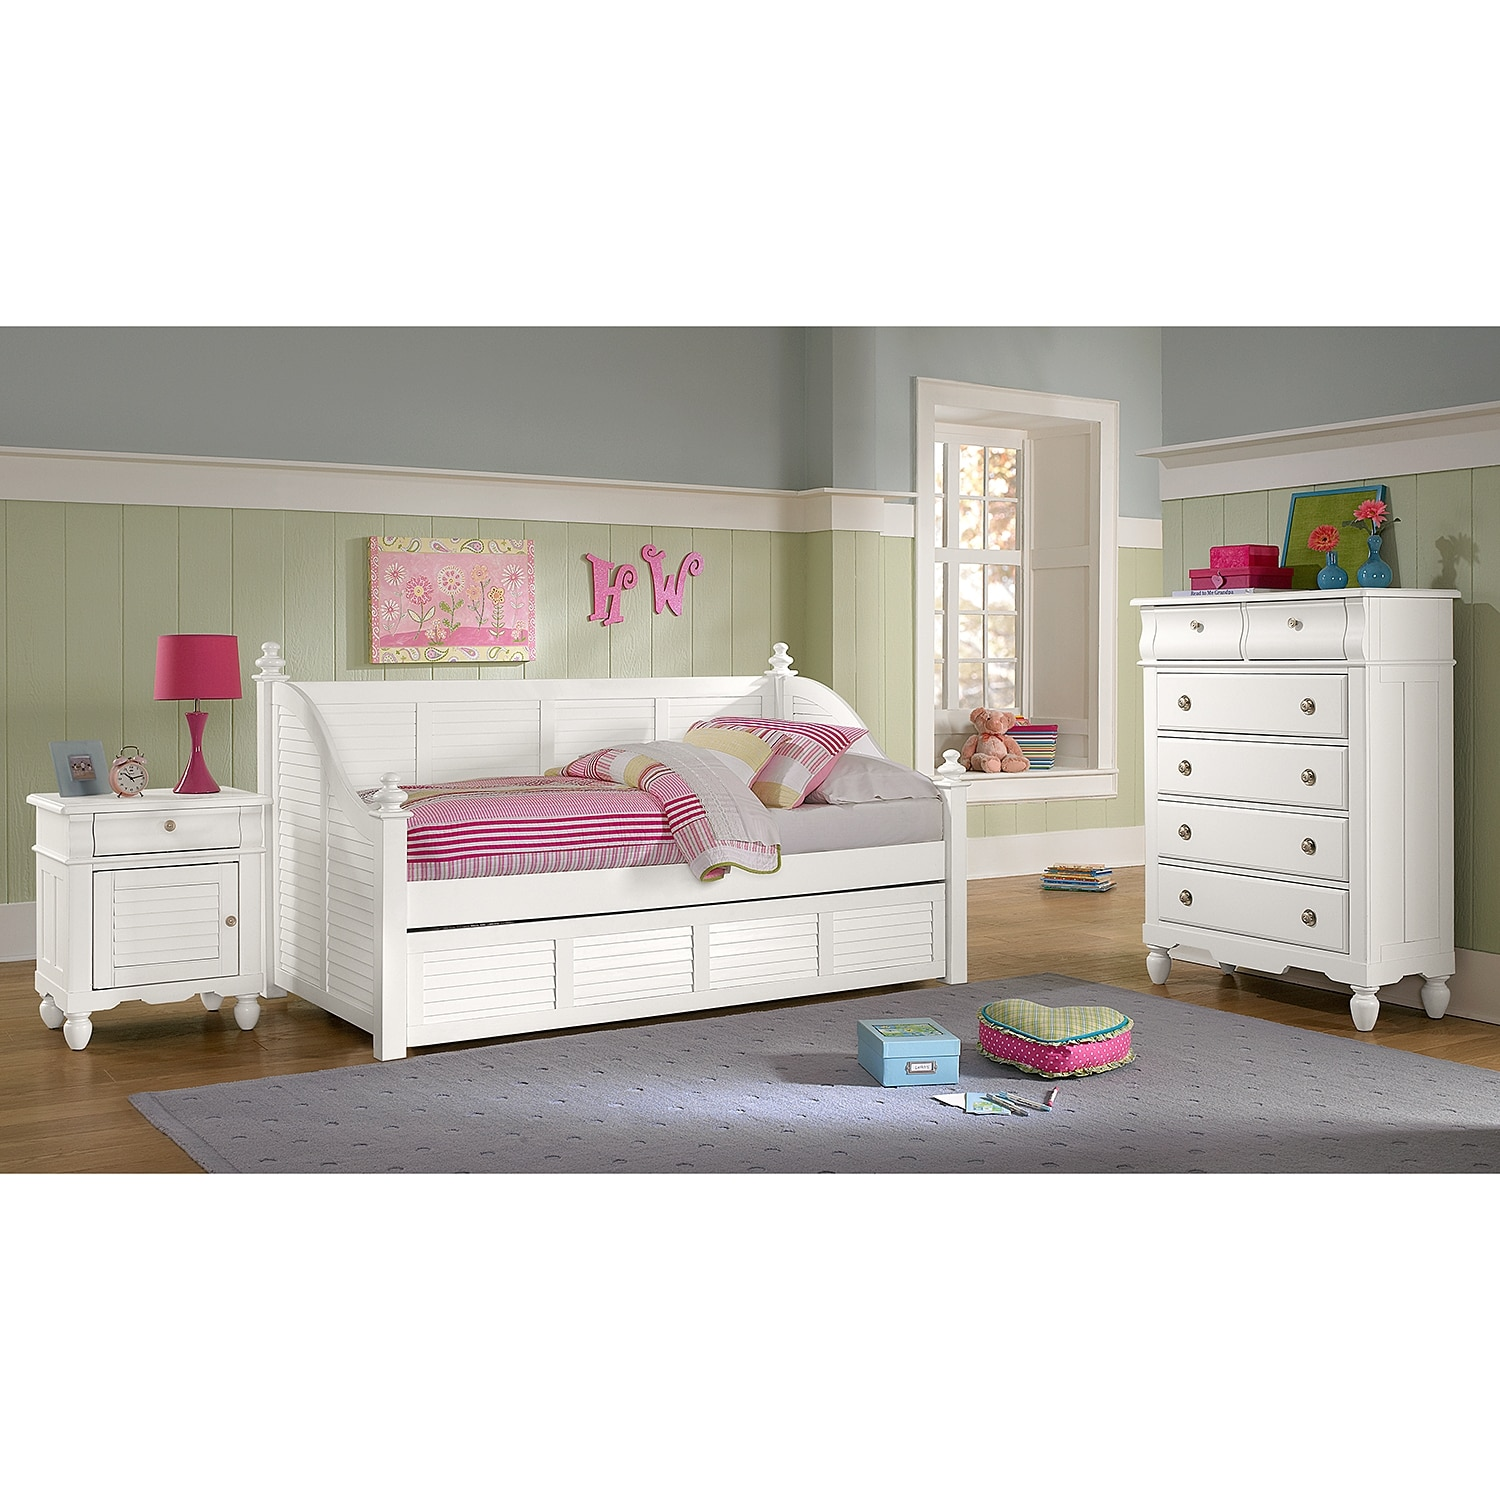 Seaside Bedroom Furniture Seaside Twin Daybed White Value City Furniture